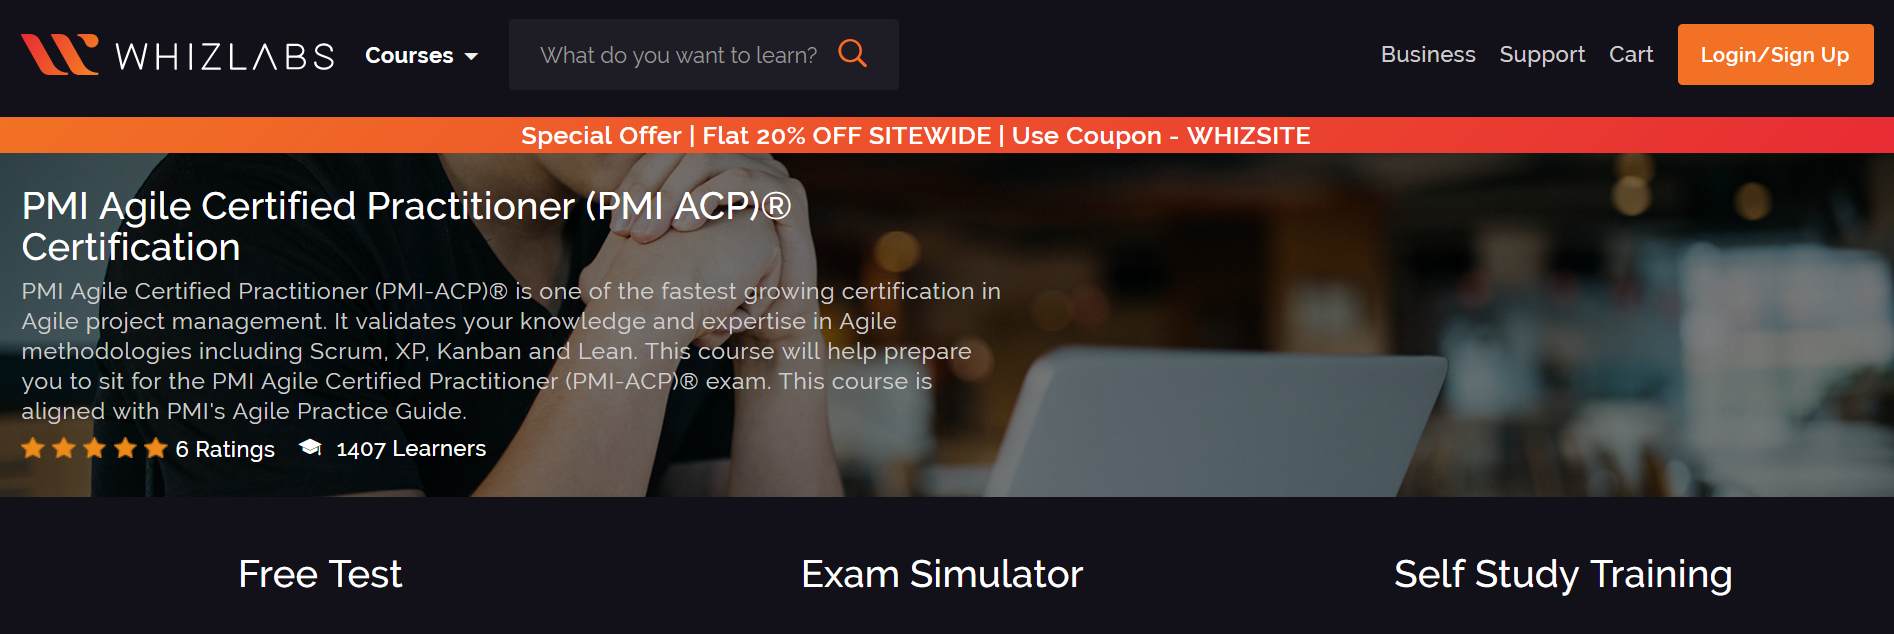 Whizlabs- PMI ACP ® Certification